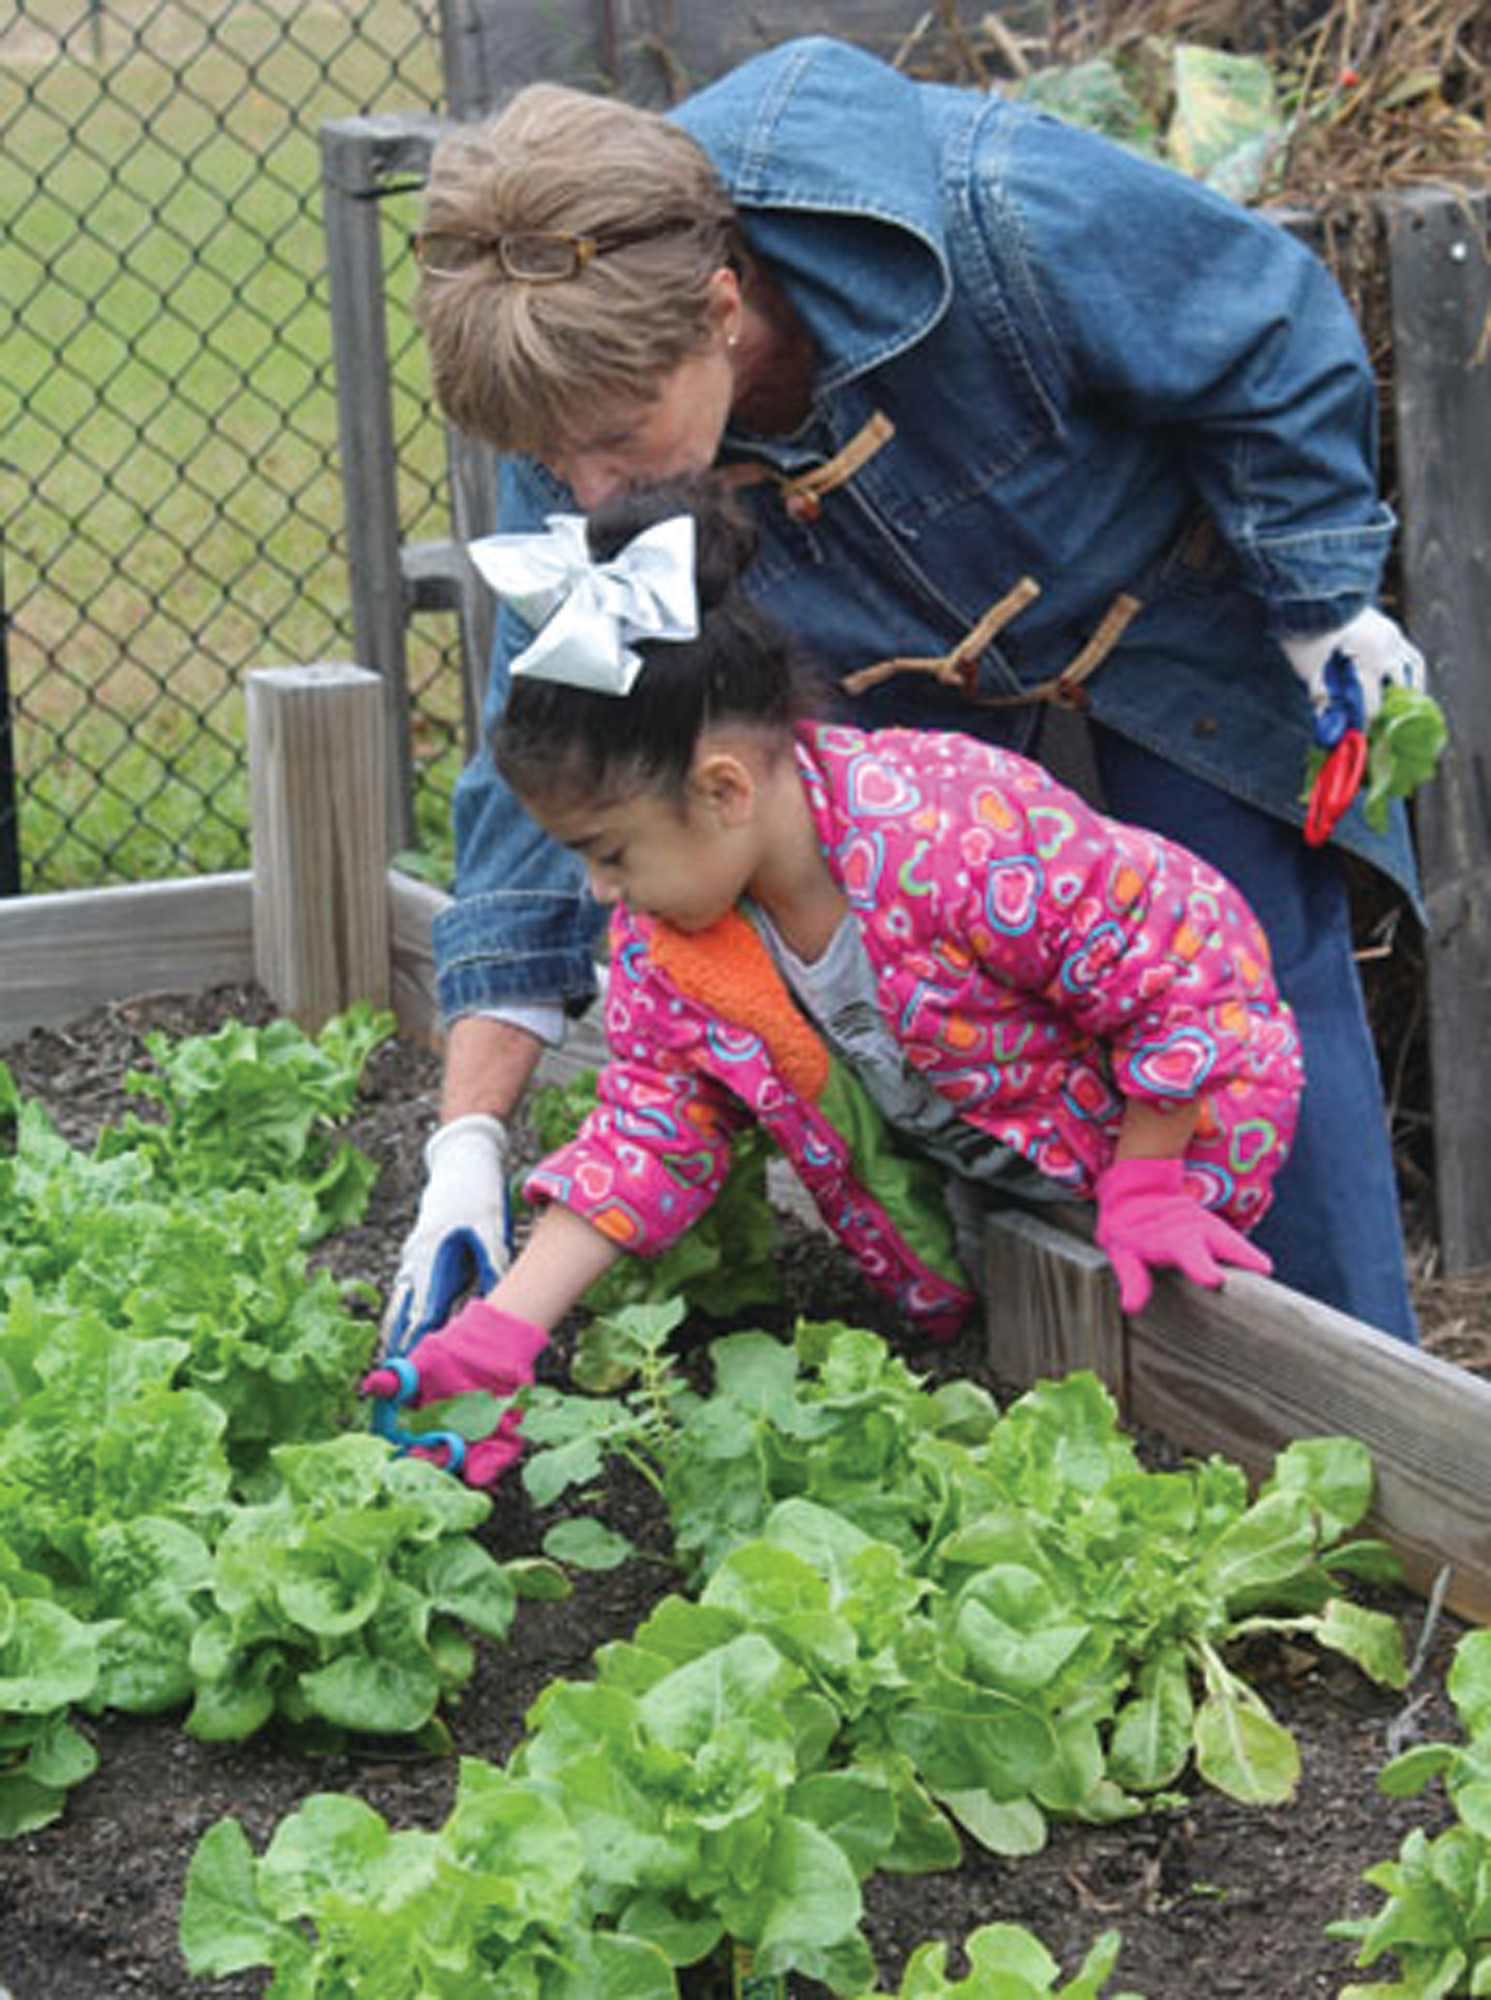 Volunteer Mary Arlen helps a kindergarten student collect lettuce leaves from the raised garden behind the school.